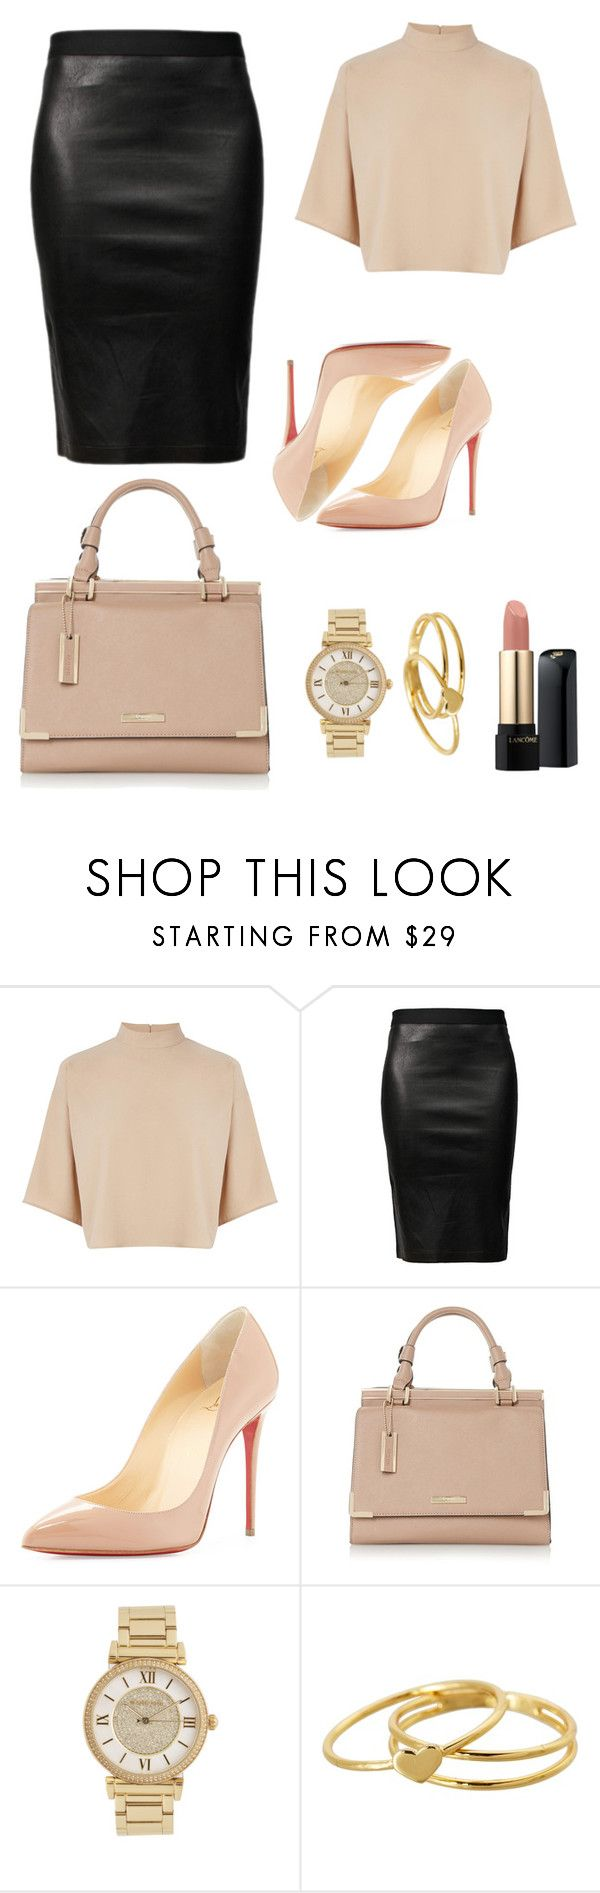 """#sananas2106 YTB"" by mathildeparislove ❤ liked on Polyvore featuring Warehouse, Helmut Lang, Christian Louboutin, Michael Kors, Gorjana and Lancôme"